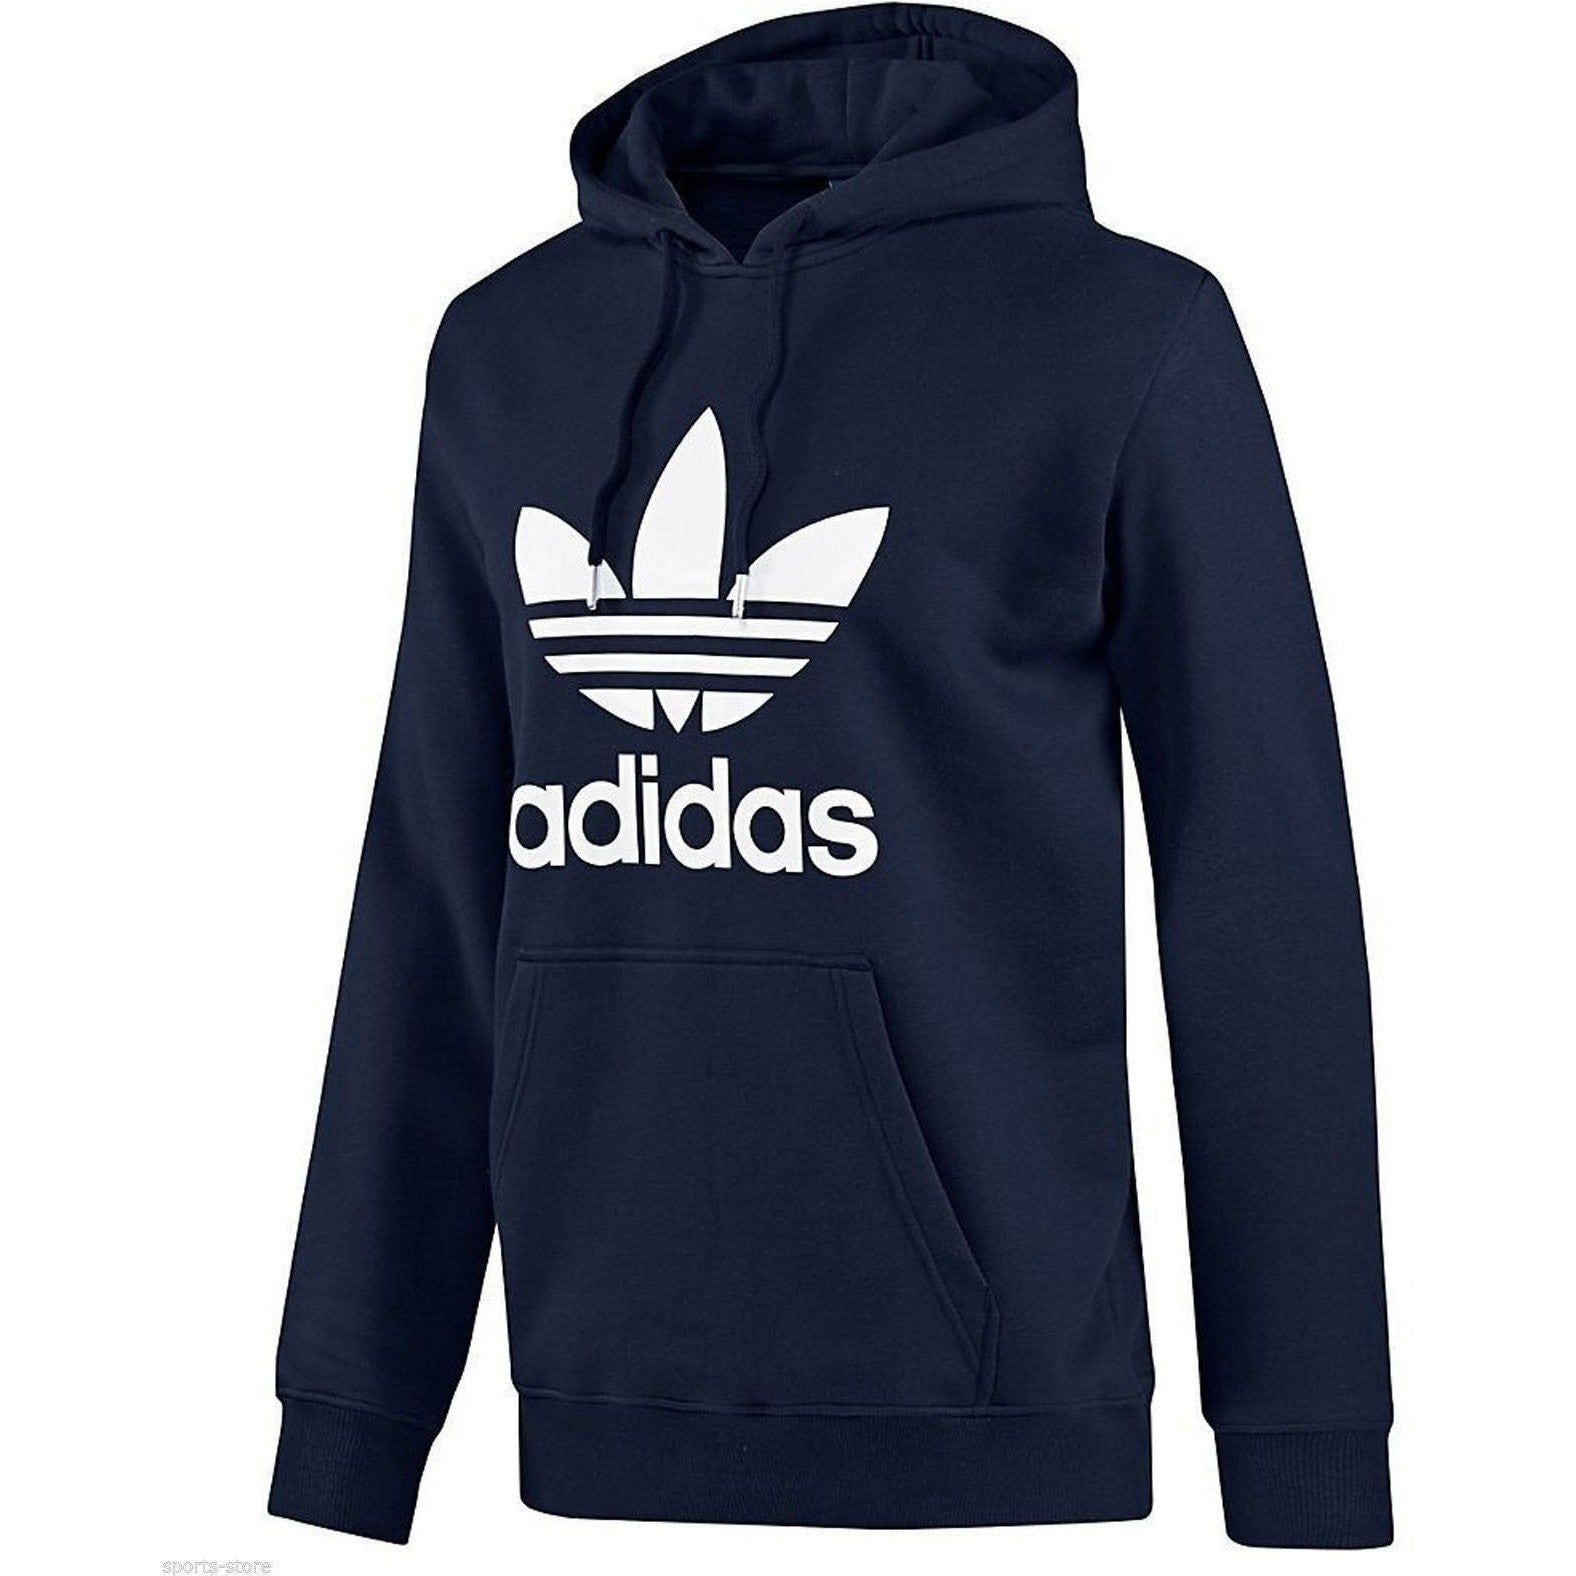 adidas hoodie adidas hoodie mens adidas sweatshirt adidas superstar. Black Bedroom Furniture Sets. Home Design Ideas